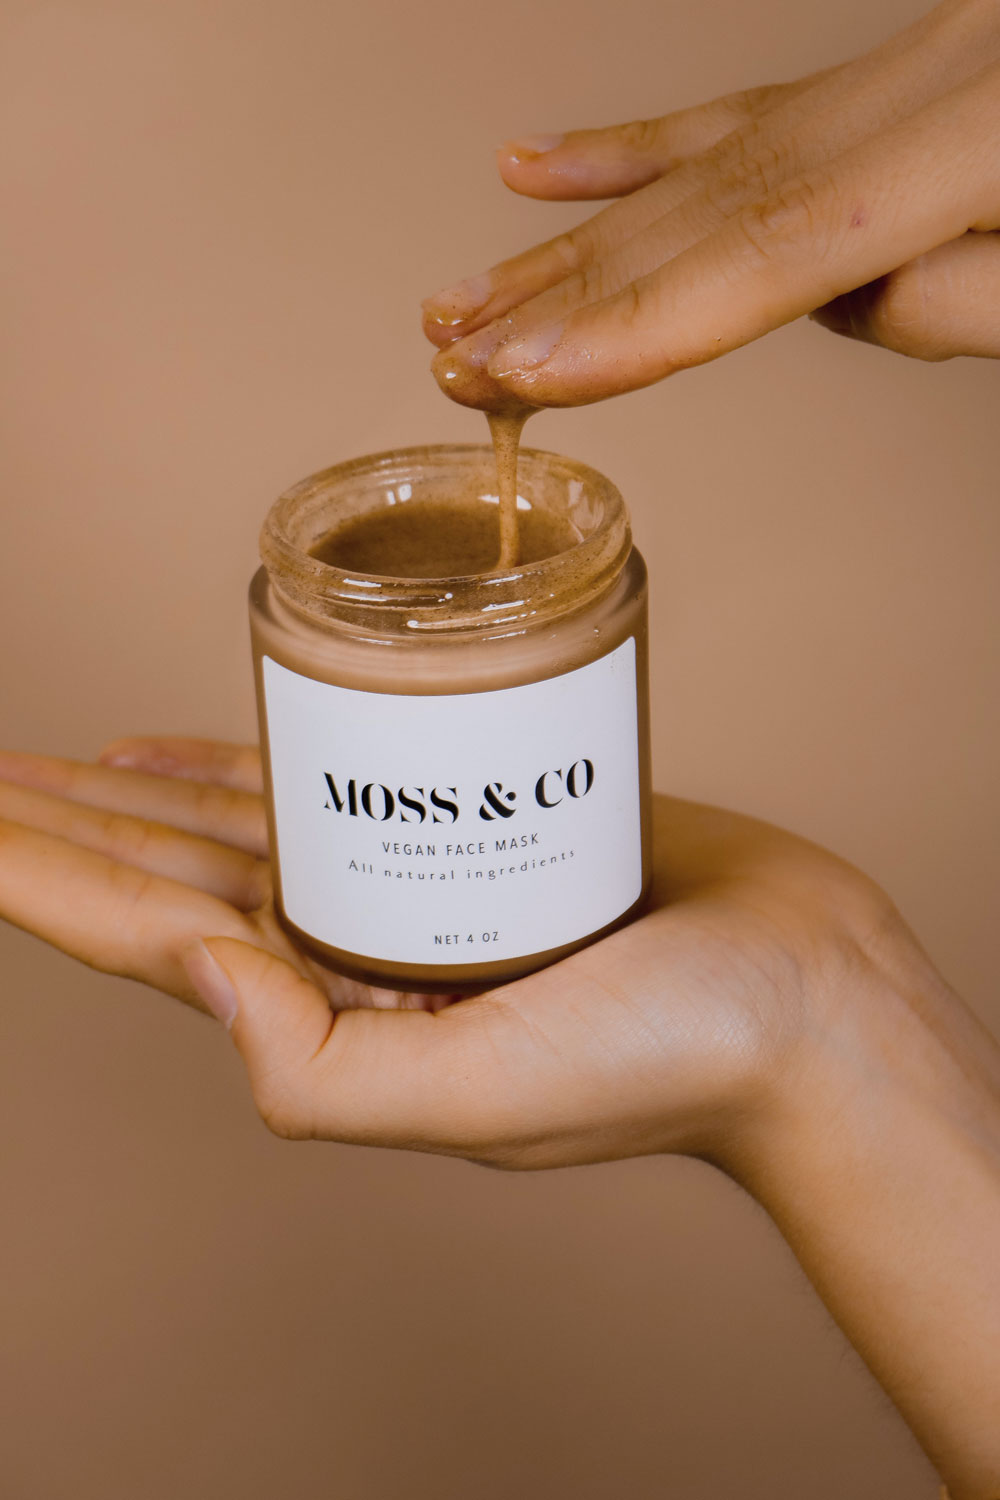 MOSS & CO All-Natural Ingredients